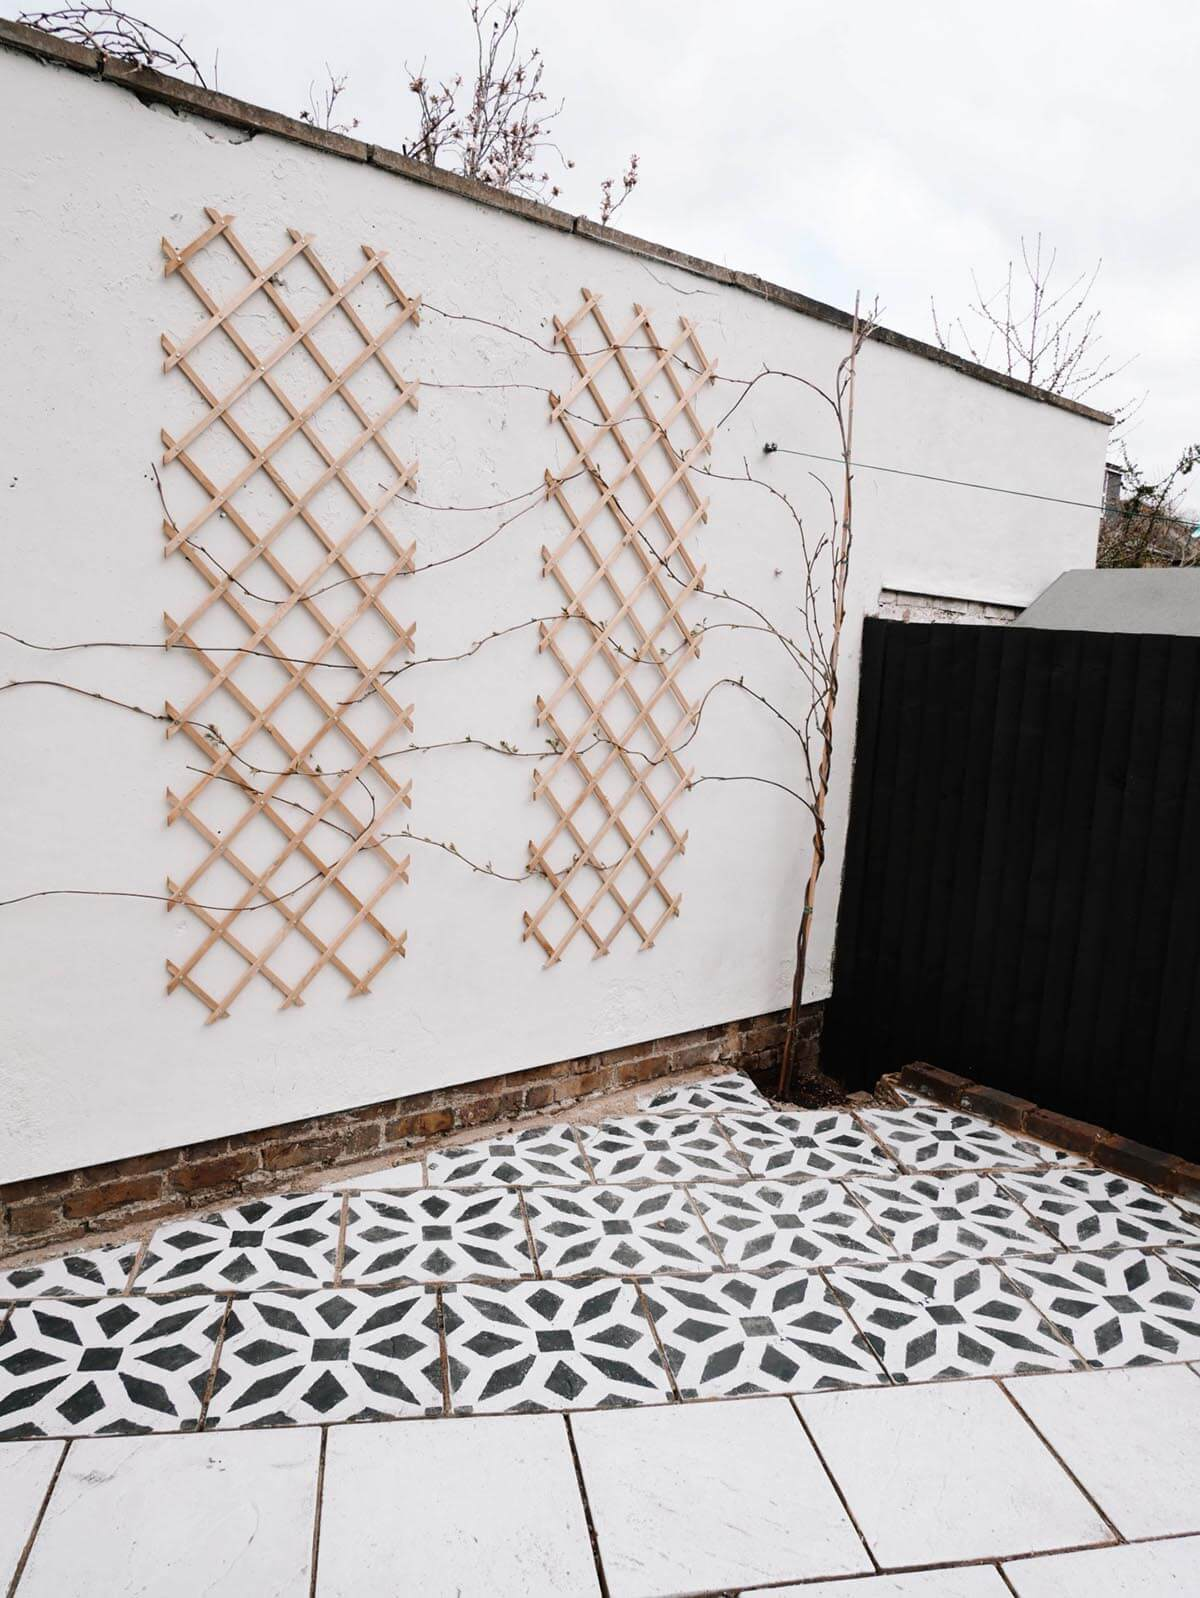 Stenciled Geometric Flowered Black and White Outdoor Tile